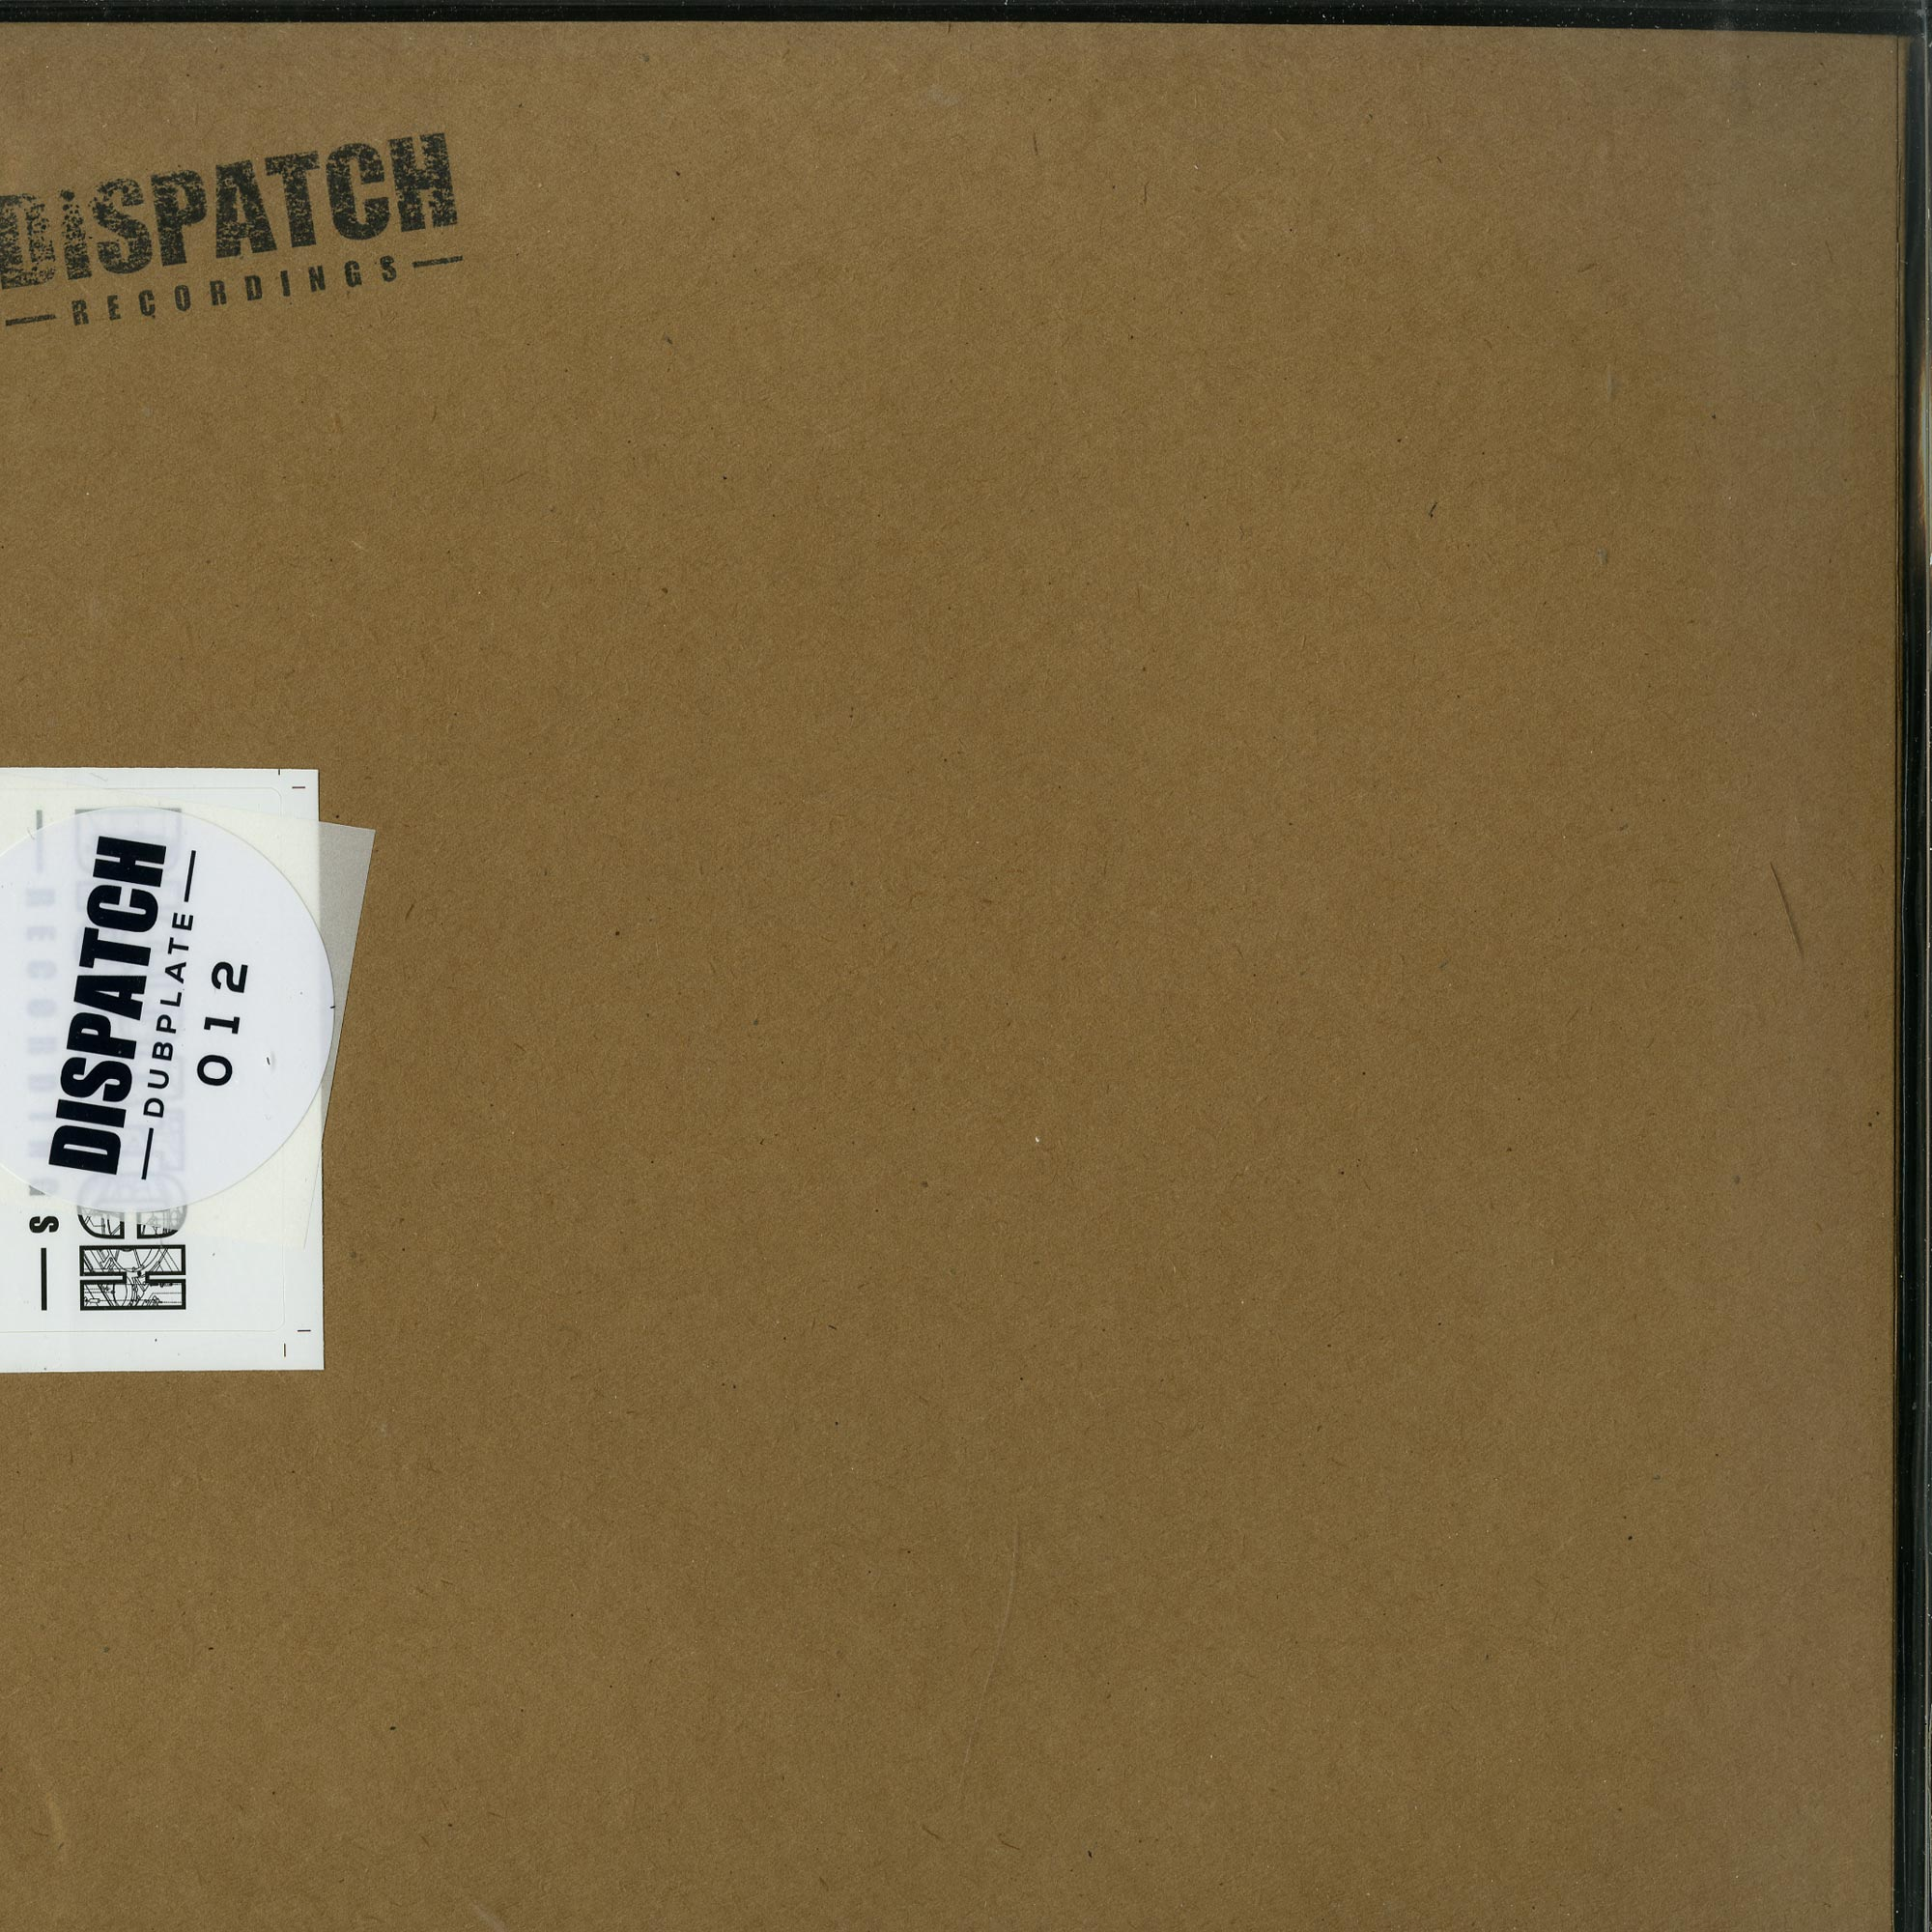 Commix - DISPATCH DUBPLATE 012